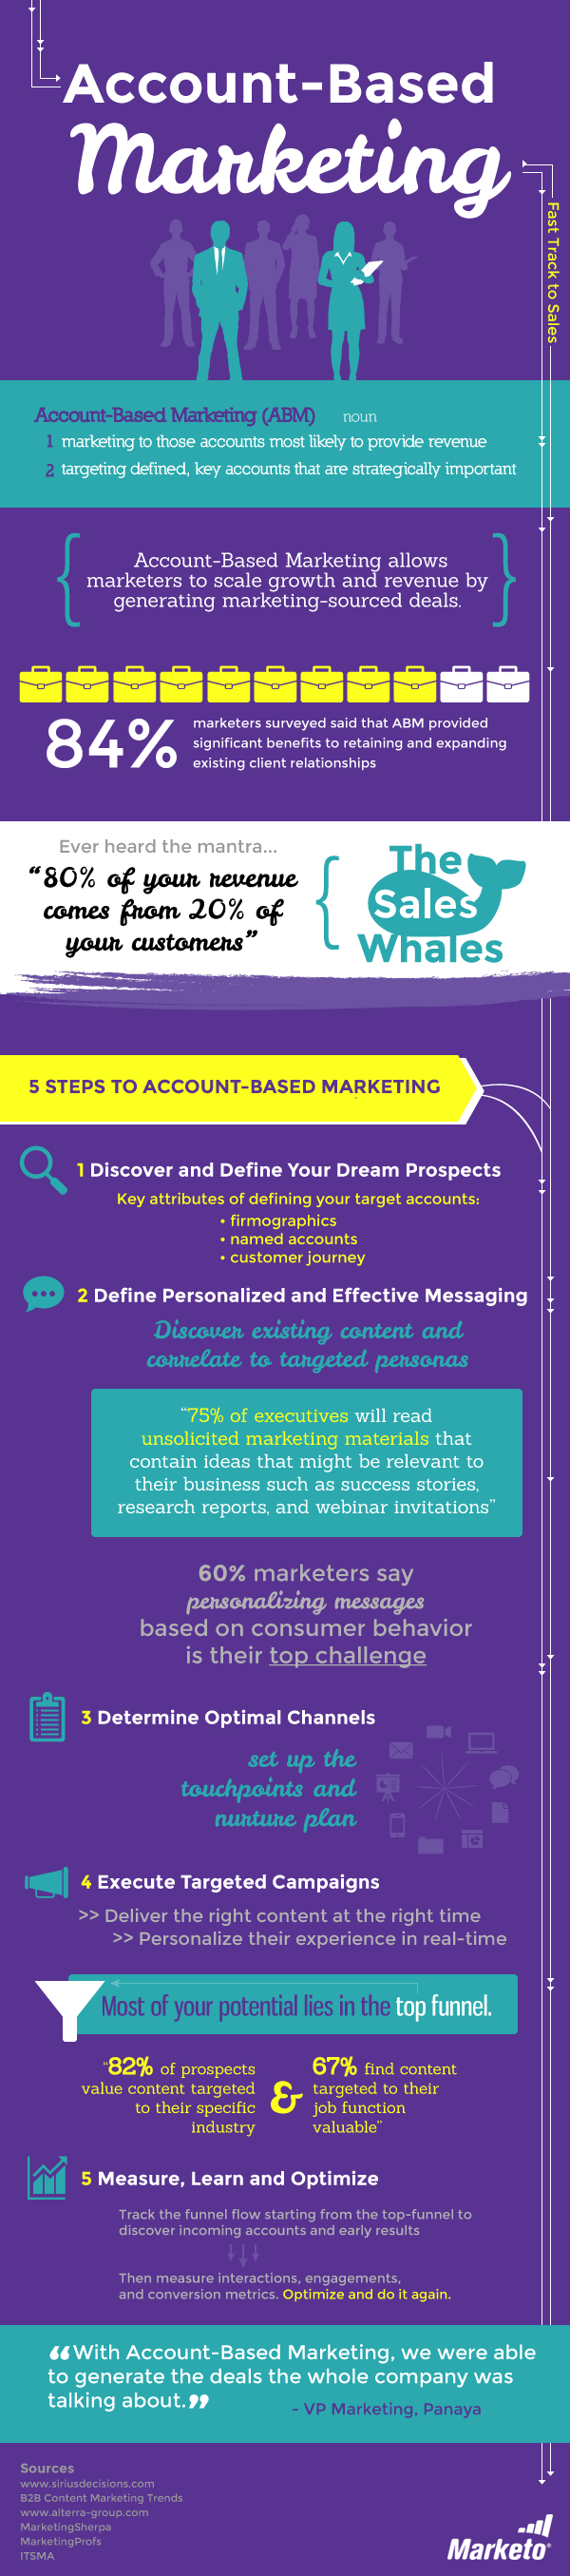 account based marketing stappen